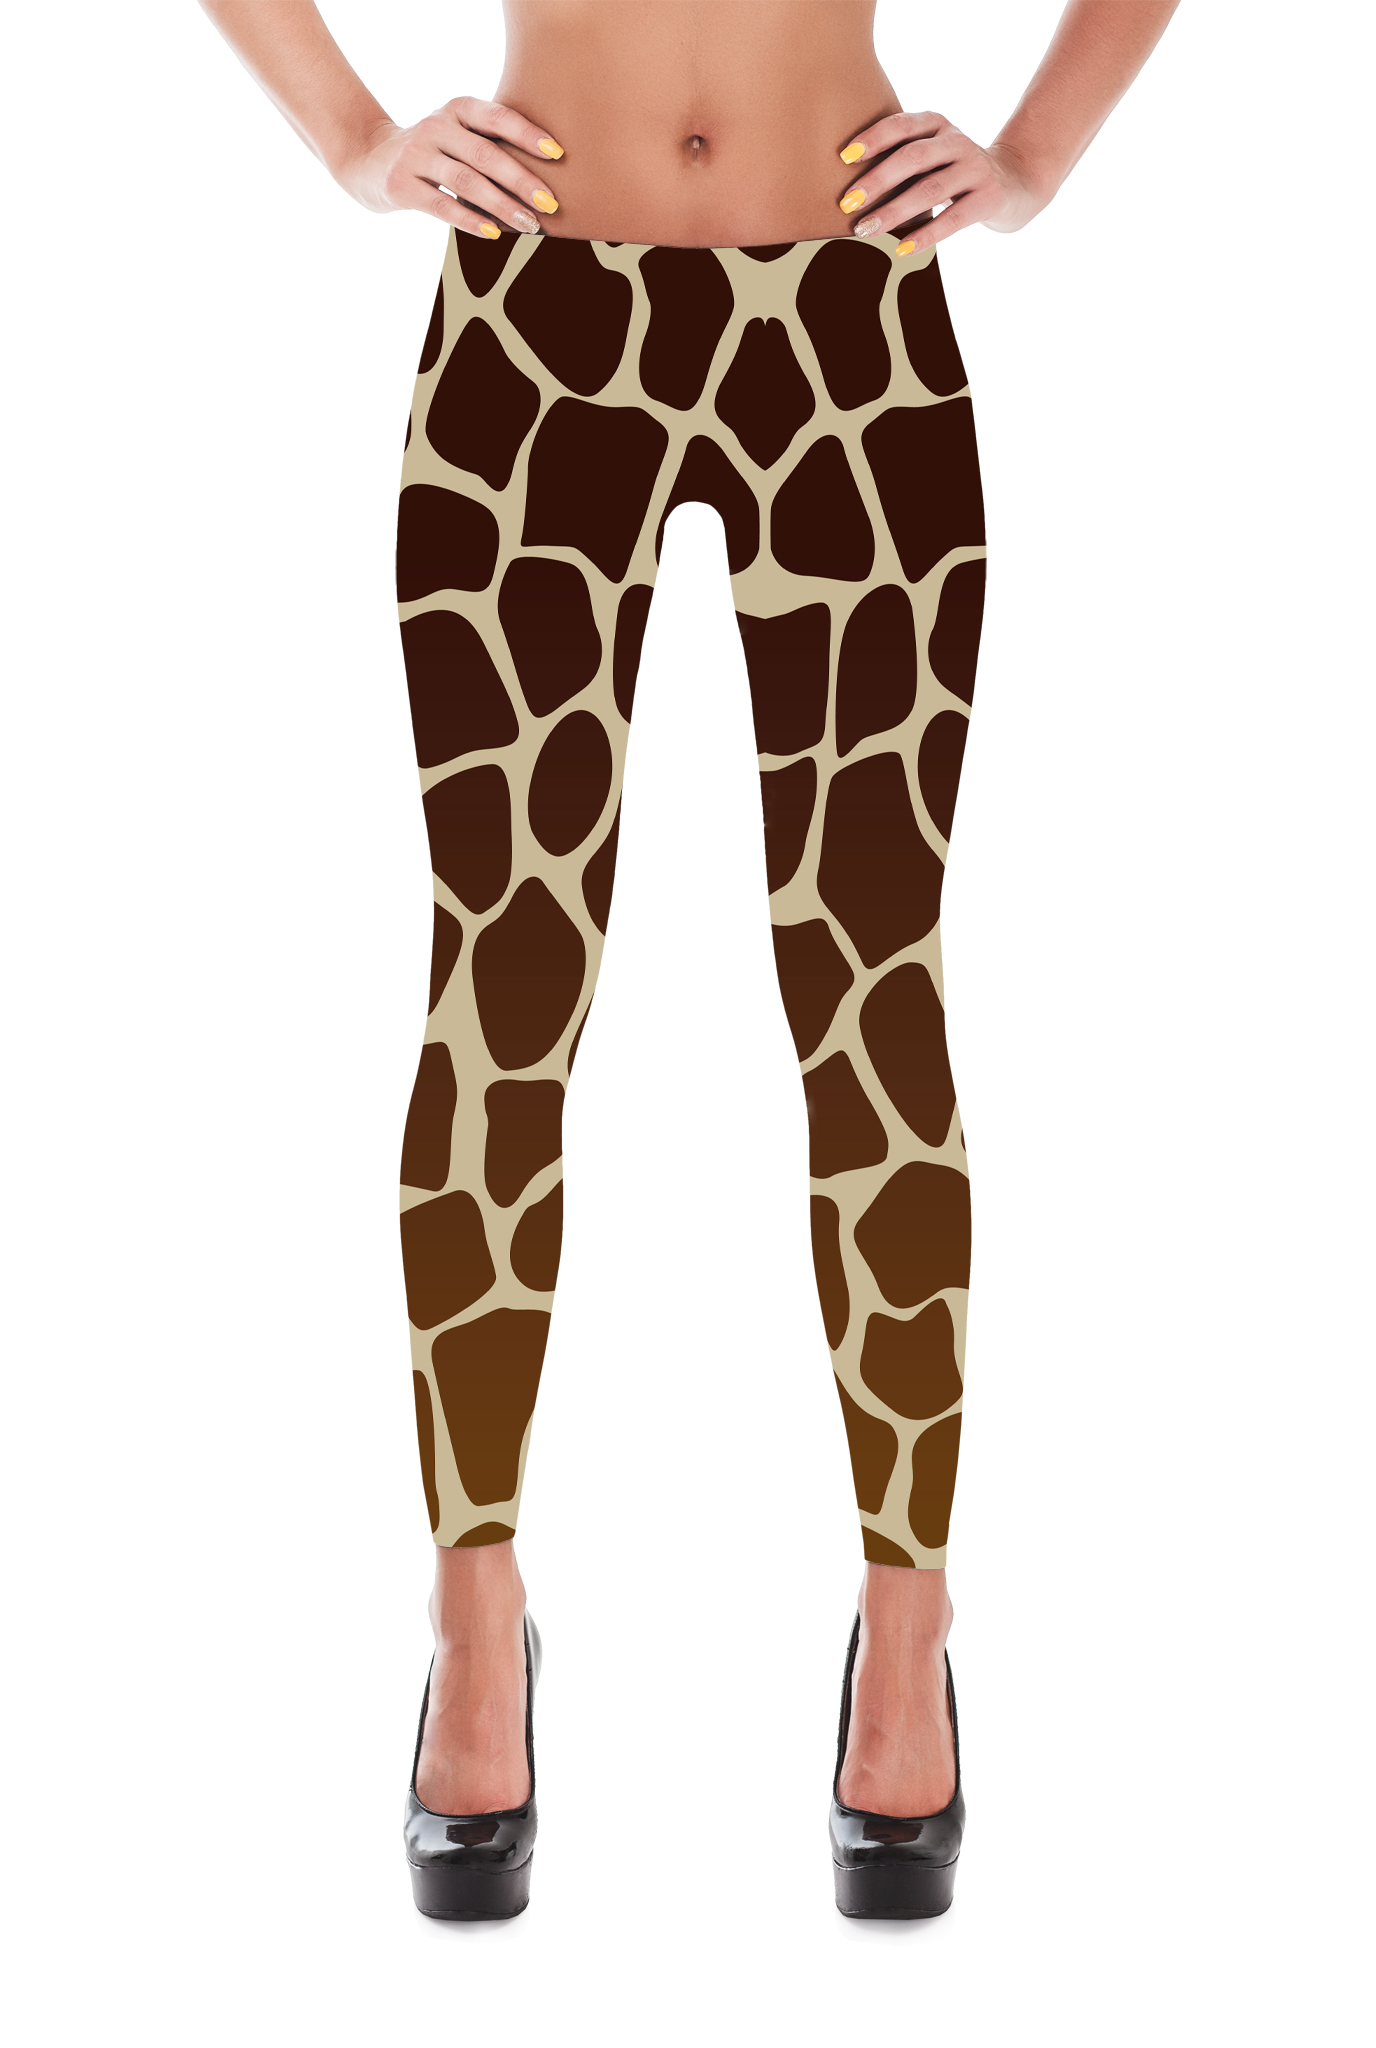 cfa8d35c5c0cf Check out our matching Giraffe Bra Top and Giraffe Dress. Shiny, durable  and hot. These polyester/spandex leggings will nev